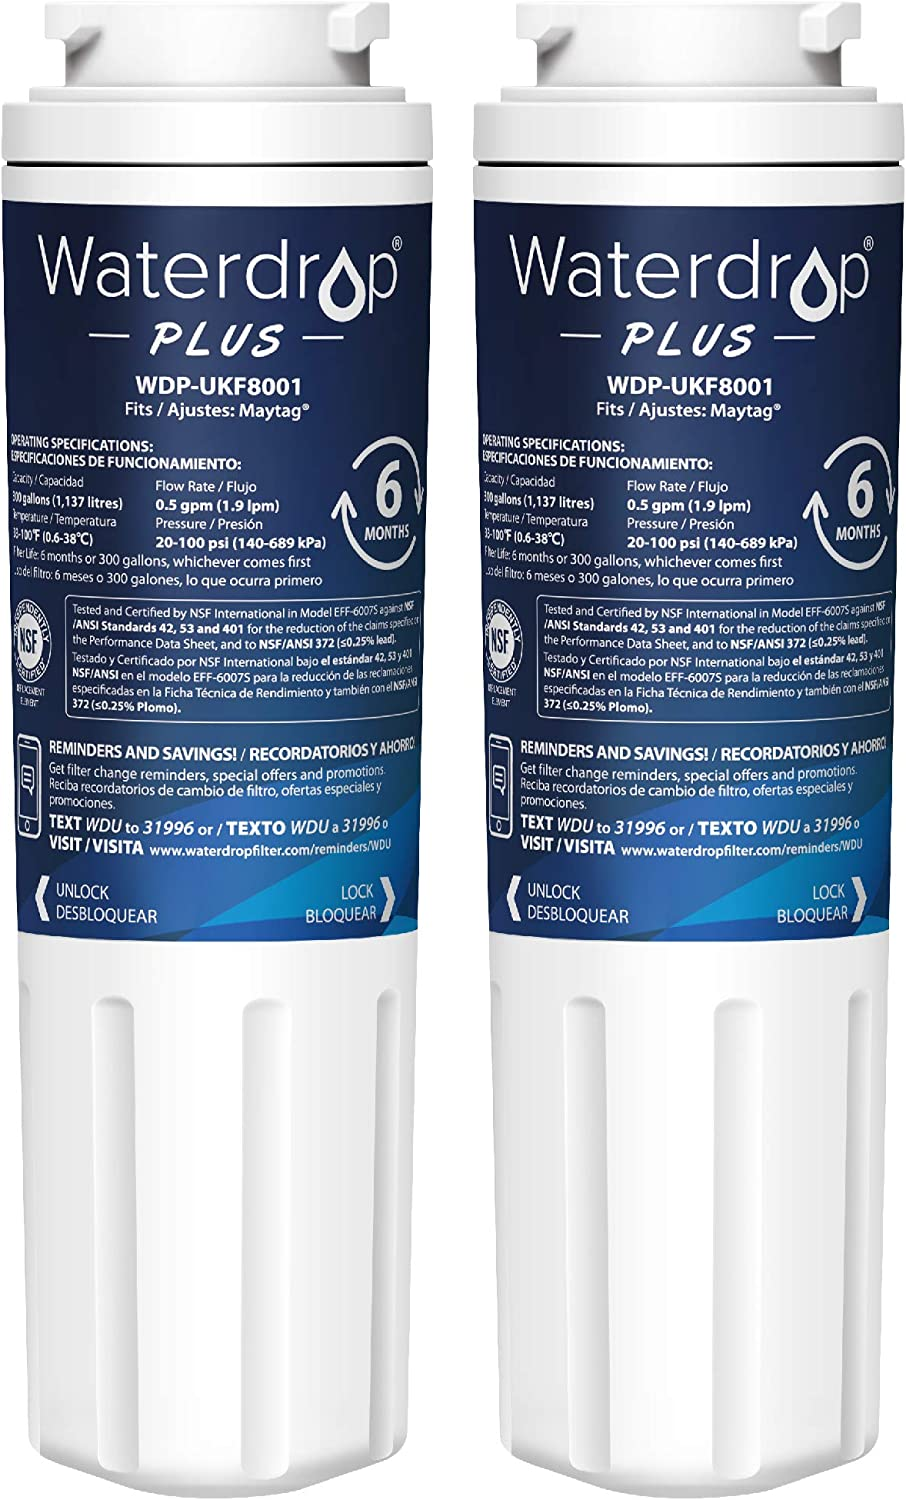 Waterdrop Plus UKF8001 Refrigerator Water Filter, Compatible with Maytag UKF8001AXX-750, UKF8001AXX-200, Whirlpool 4396395, 469006, Filter 4, PUR, Puriclean II, EDR4RXD1, Pack of 2